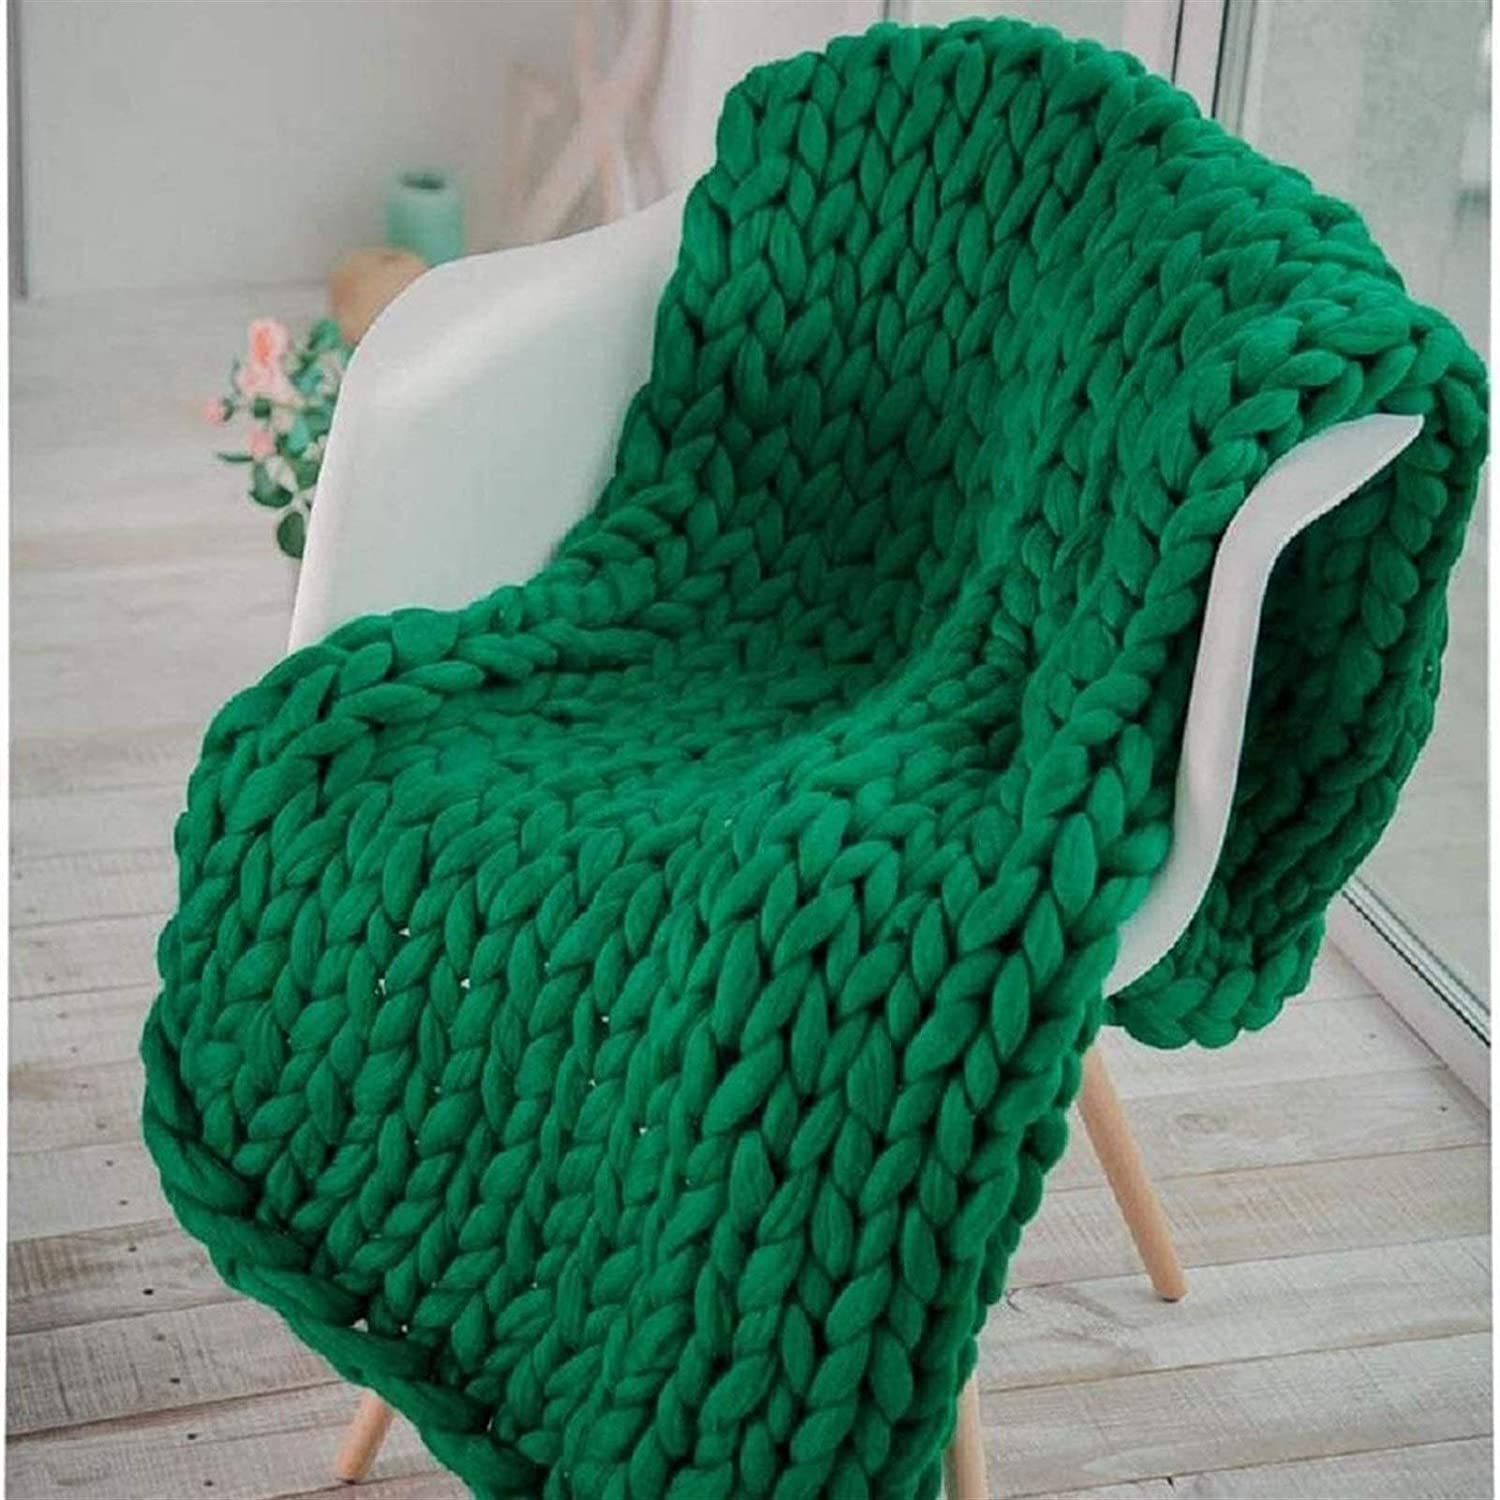 JGYZD Financial sales sale Hand Knitting Blanket -Large Soft Weekly update Made Knitted Cable